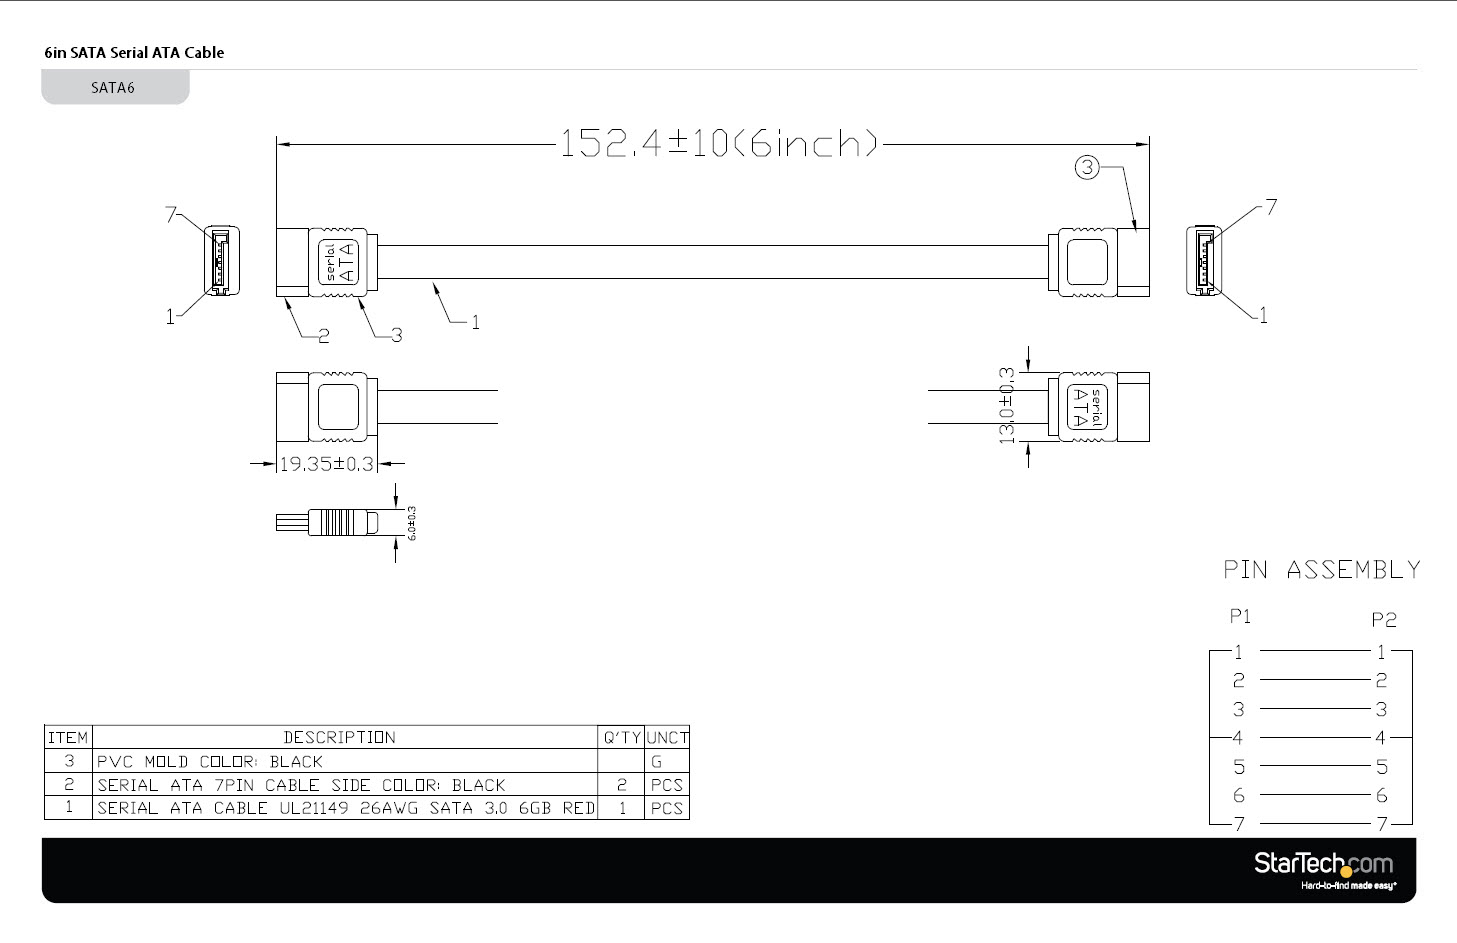 sata cable serial ata cable 6in startech com sata cable diagram sata wire diagram #43